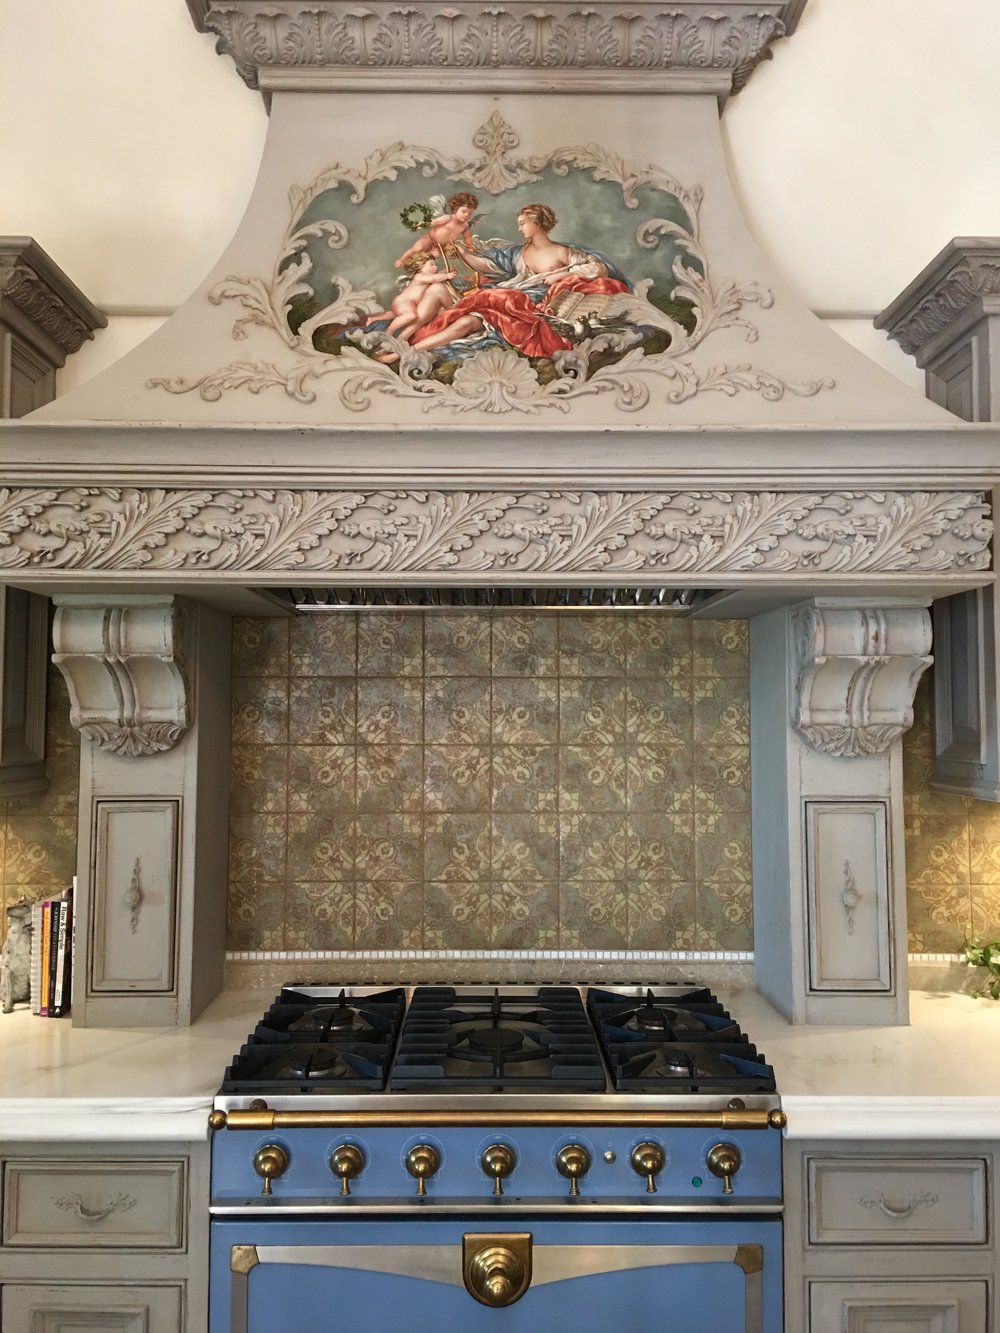 Oven hood adorned with a mural